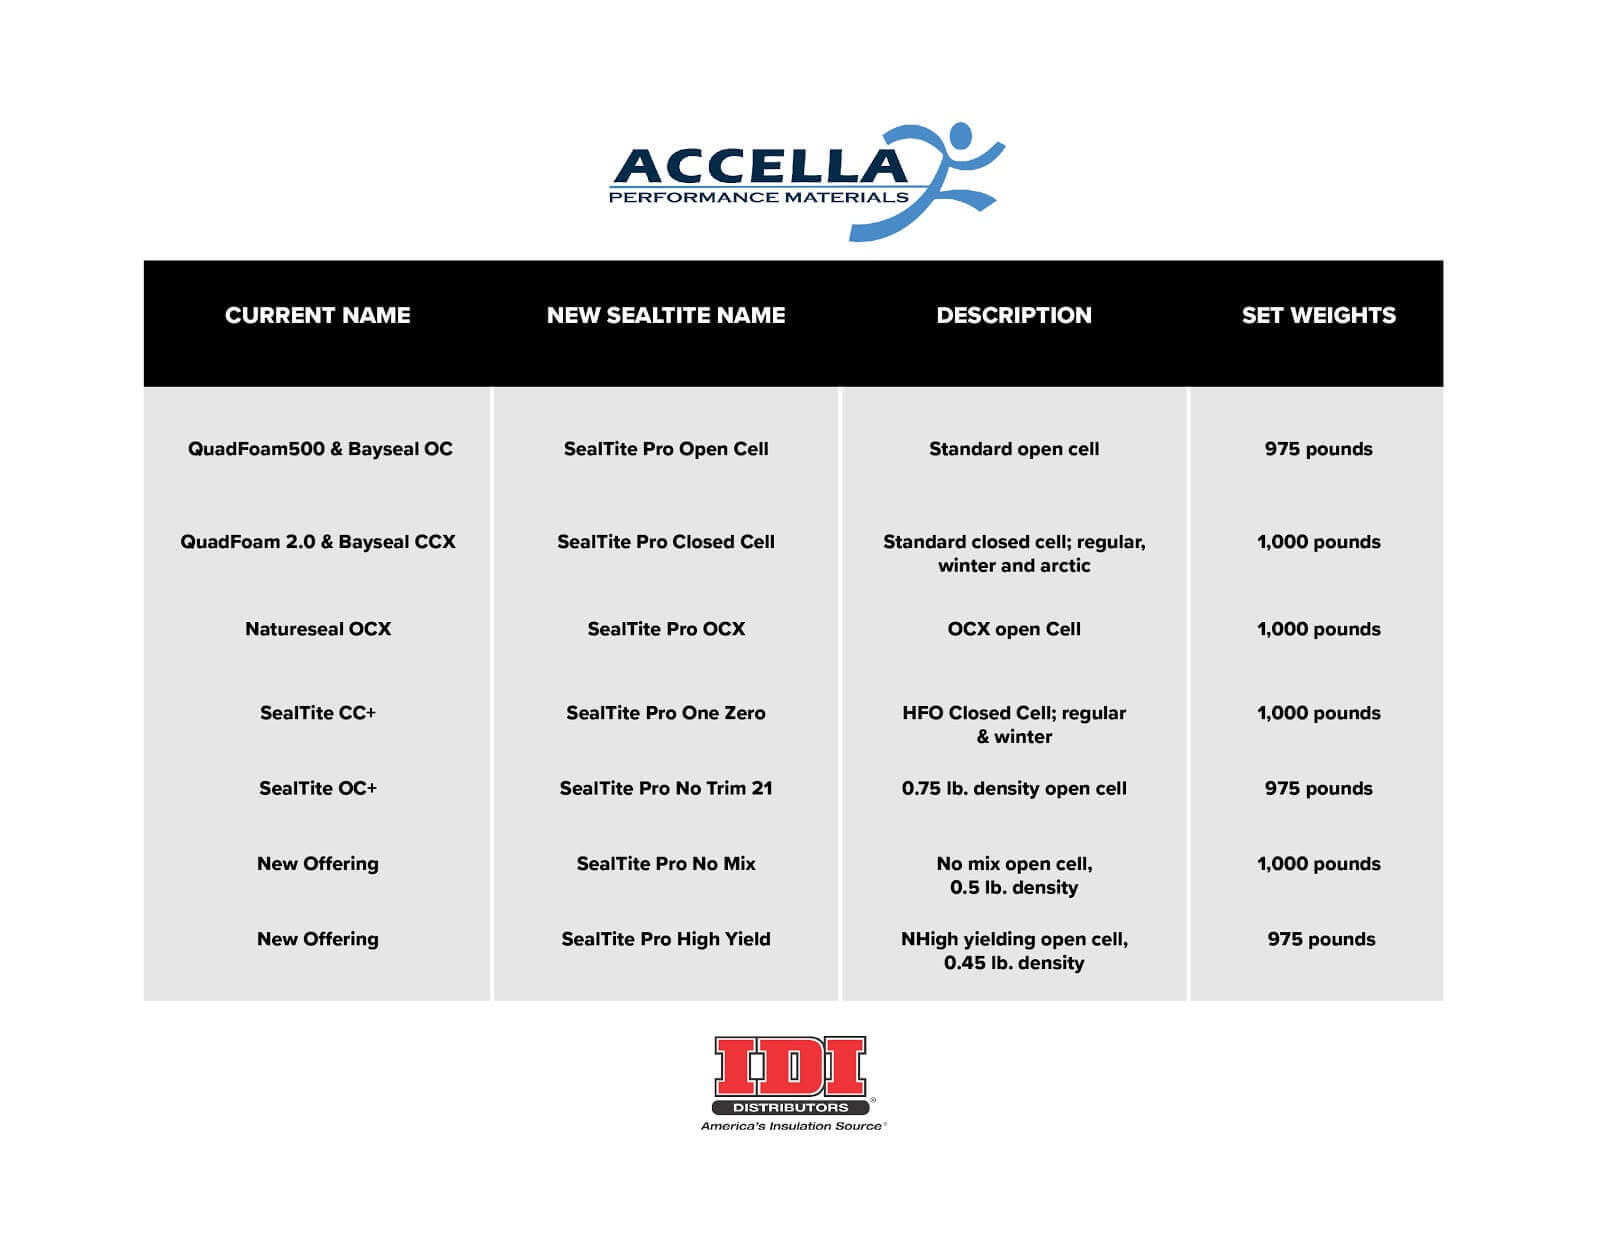 Accella to SealTite PRO product guide